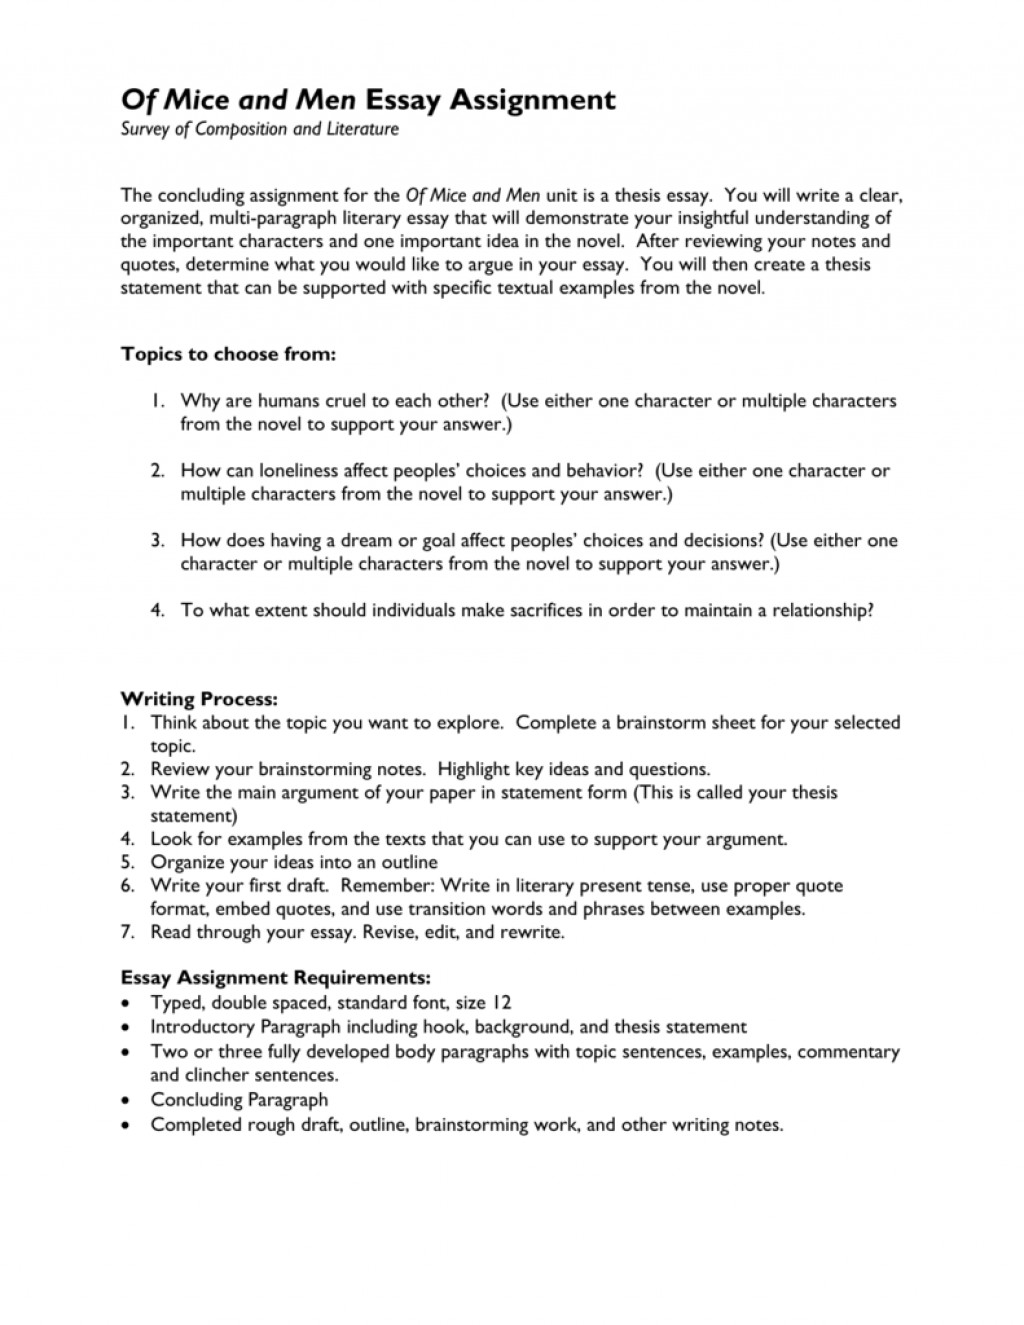 015 007881369 2 Thesis Essay Stupendous Antithesis Synthesis Structure Driven Template Paper Example Outline Large